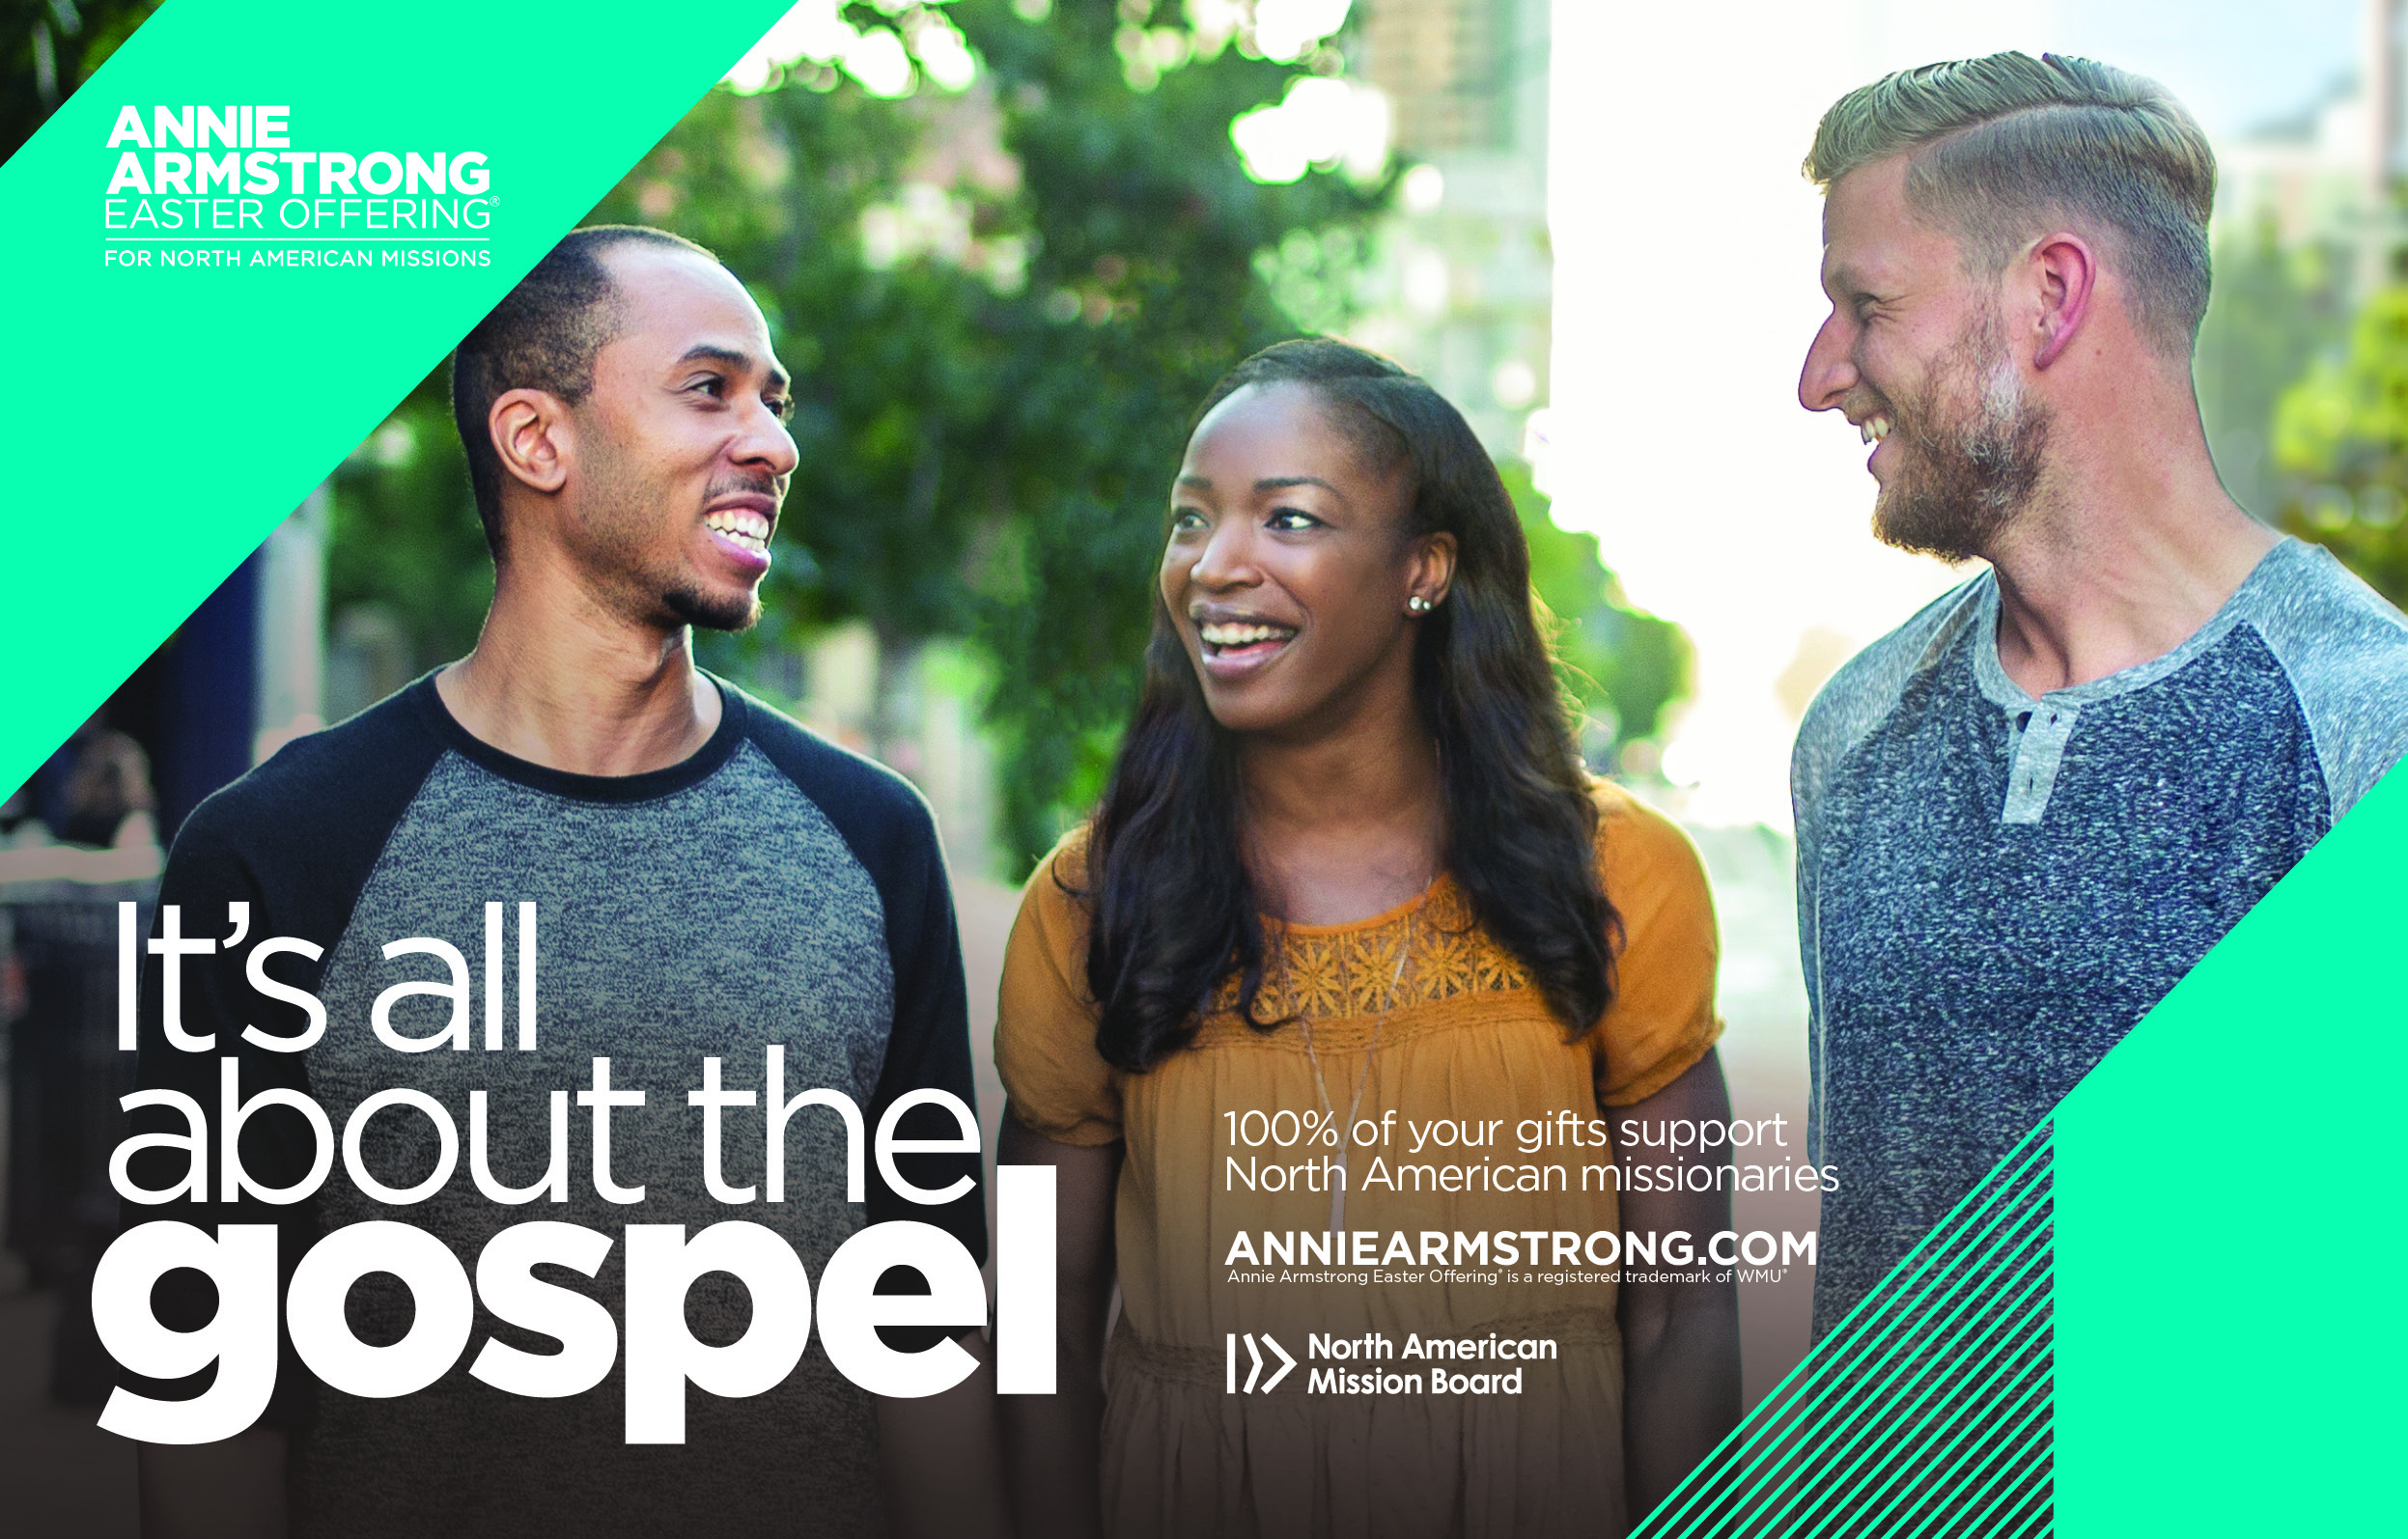 Annie Armstrong, Week of Prayer, It's all about the Gospel